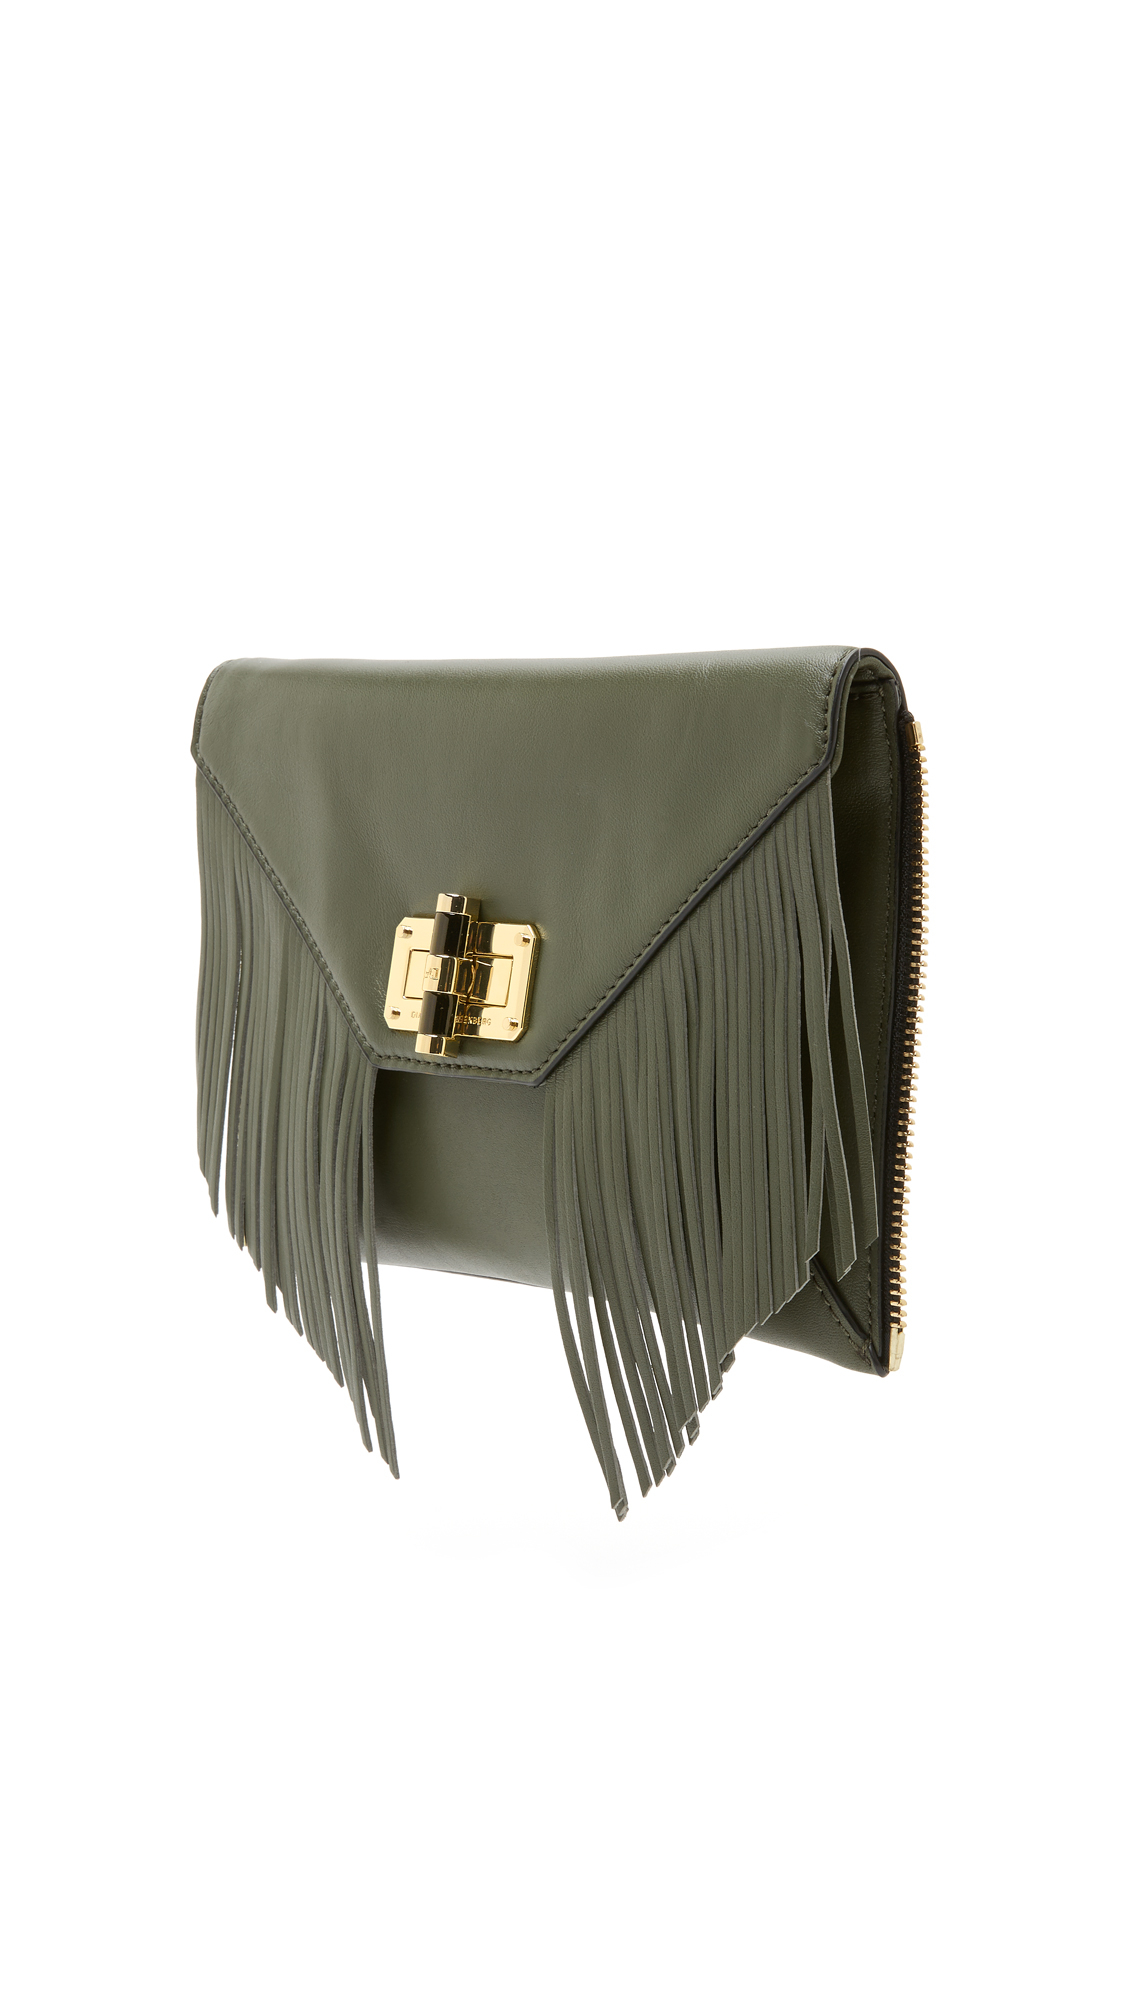 b9c476cf344f Diane von Furstenberg 440 Secret Agent Zip Out Clutch - Olive in ...